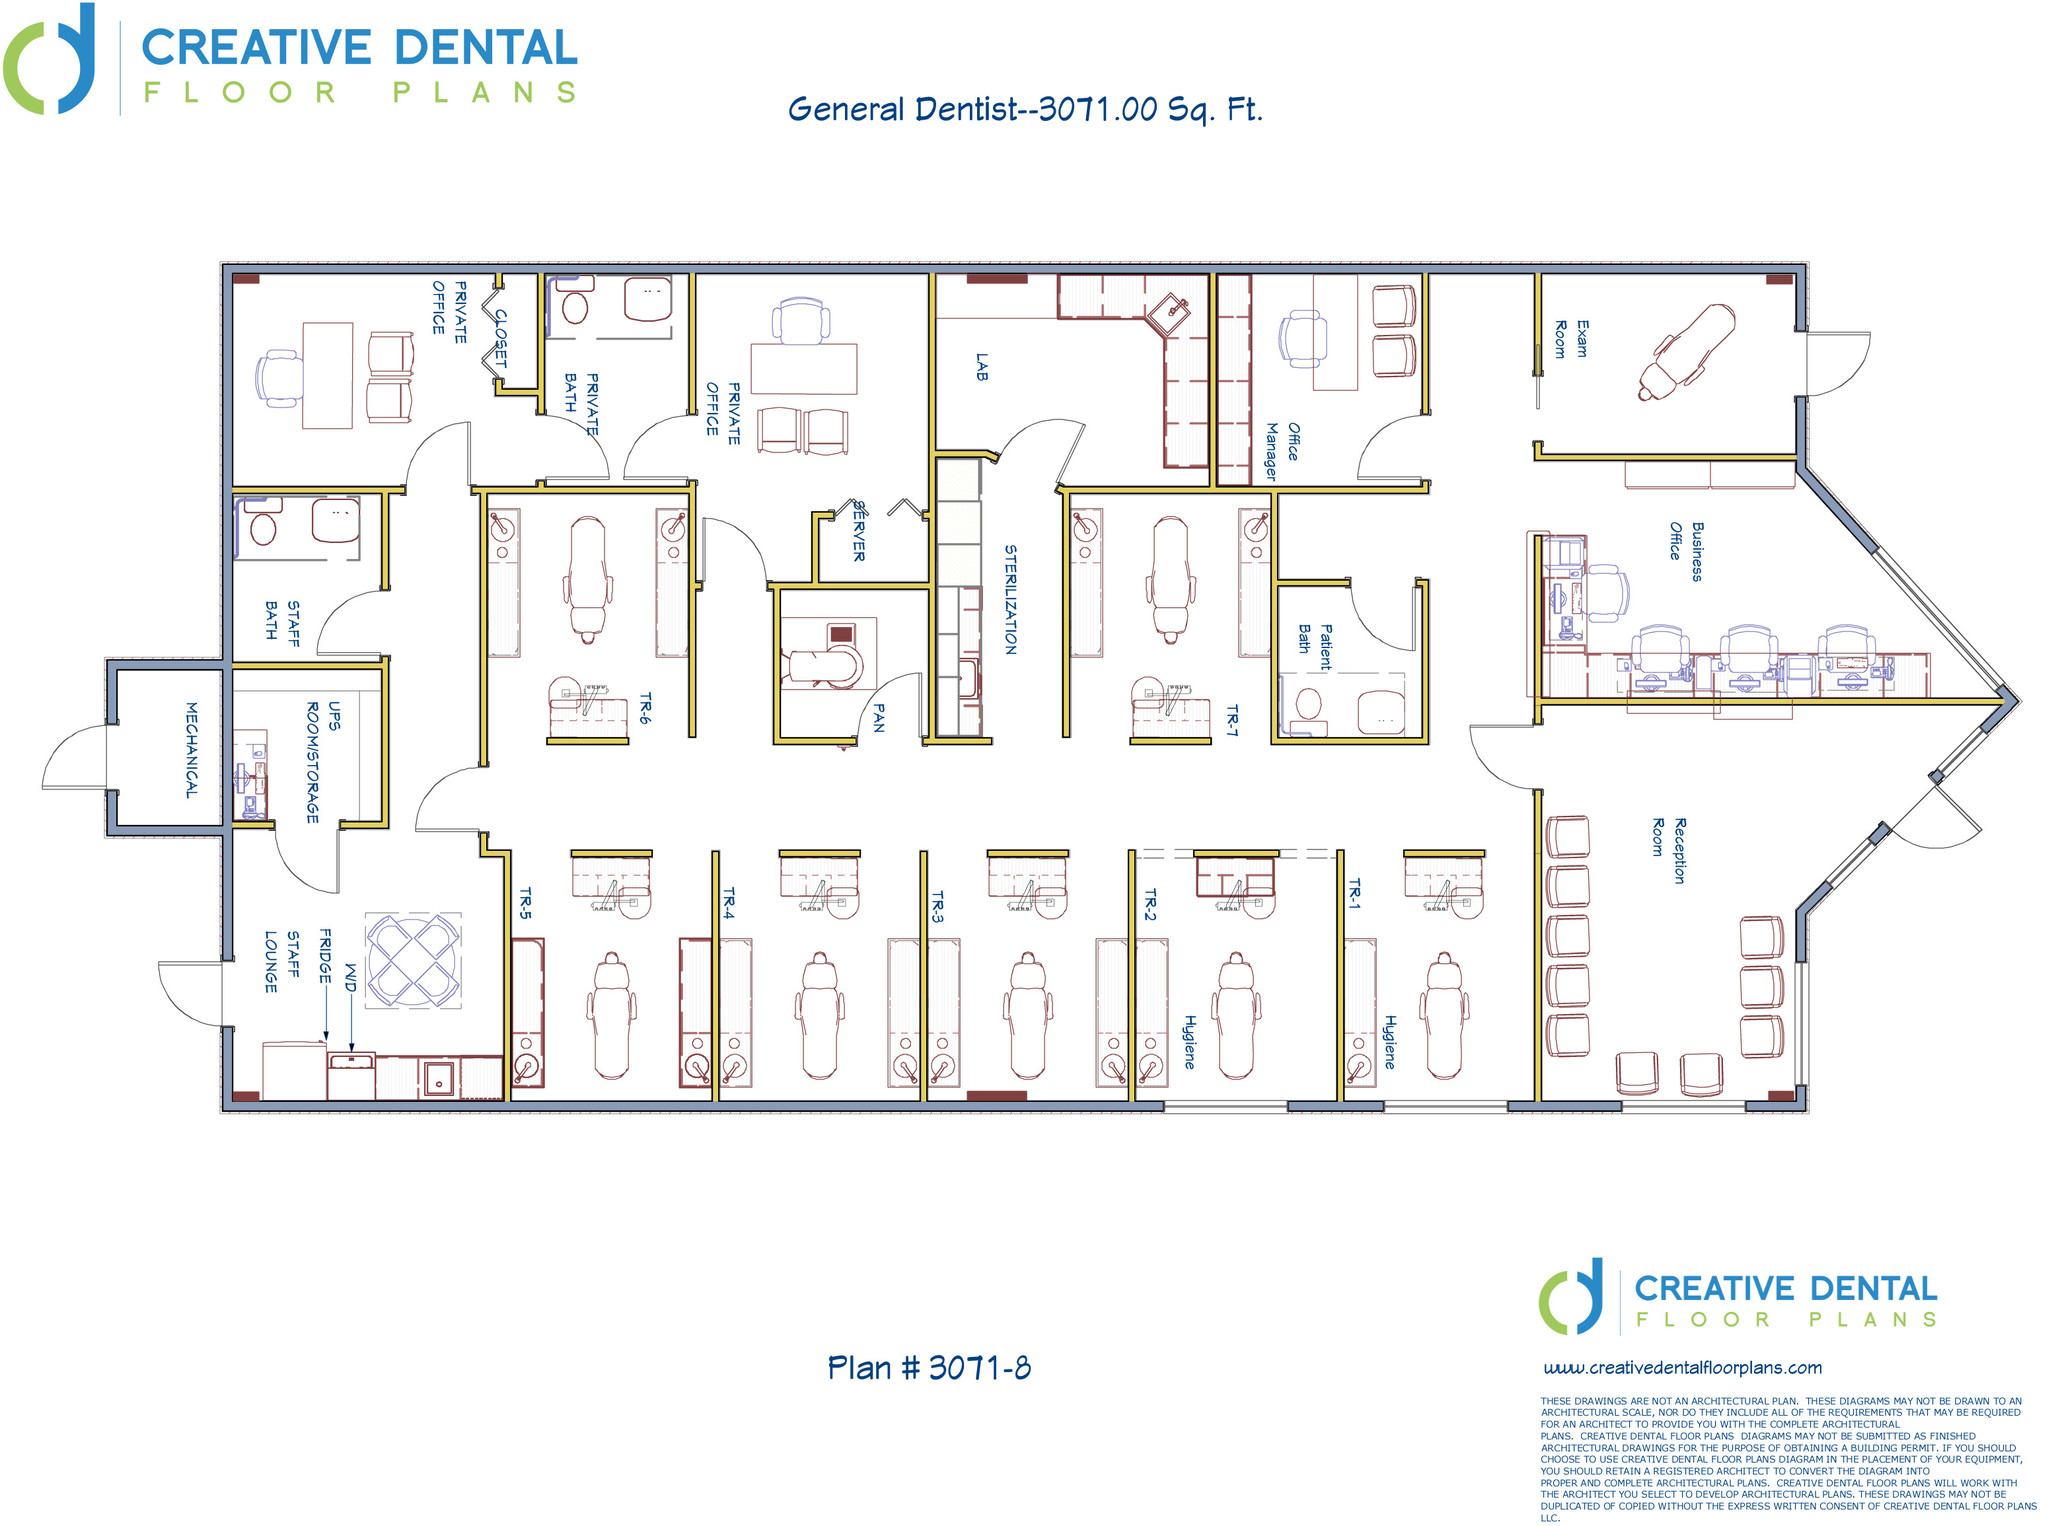 Creative dental floor plans strip mall floor plans 4000 sq ft office plan